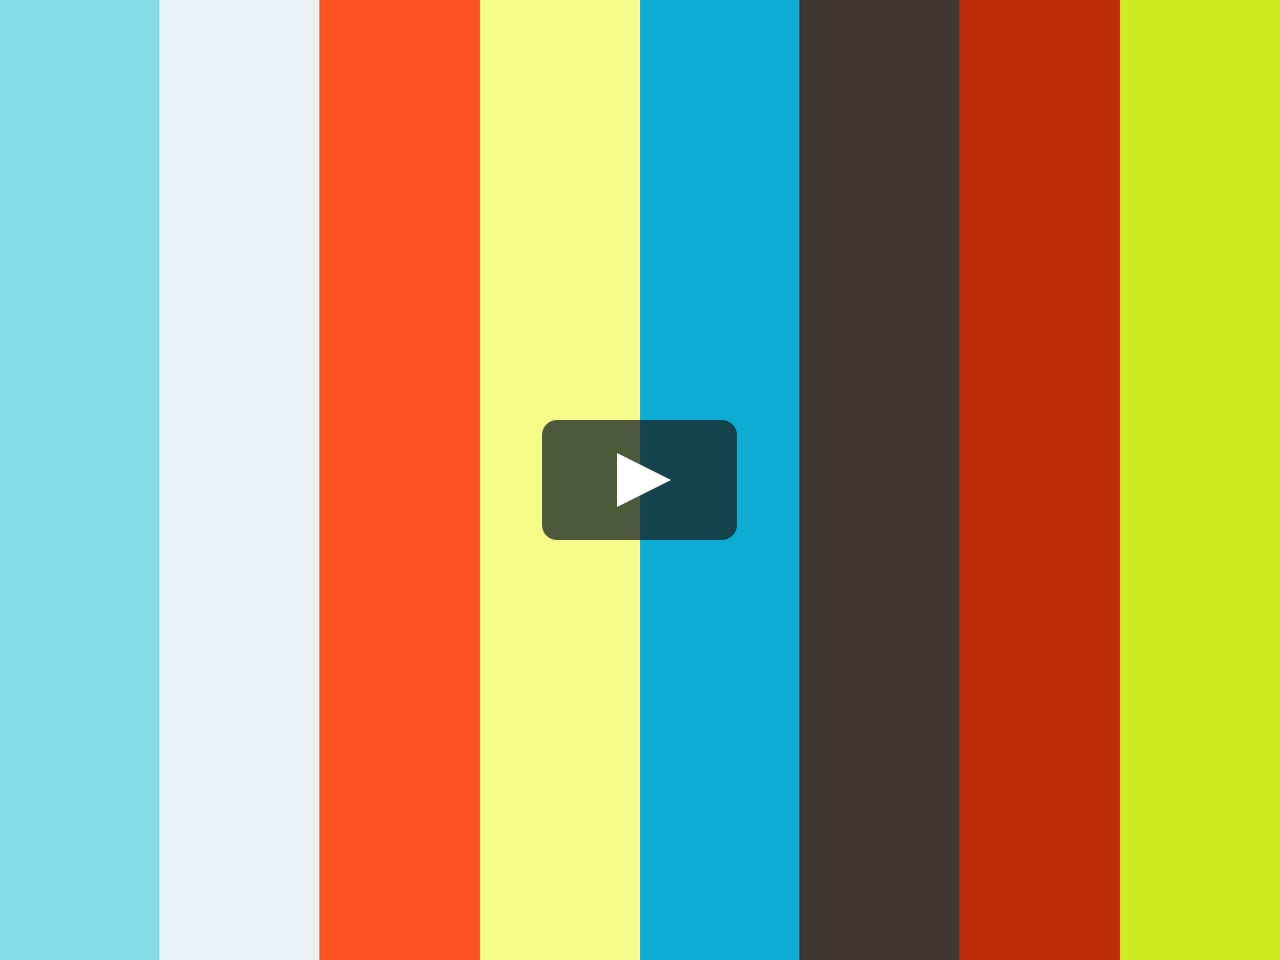 Besthrcertificationshrcertificationtraining Hr Remedy India